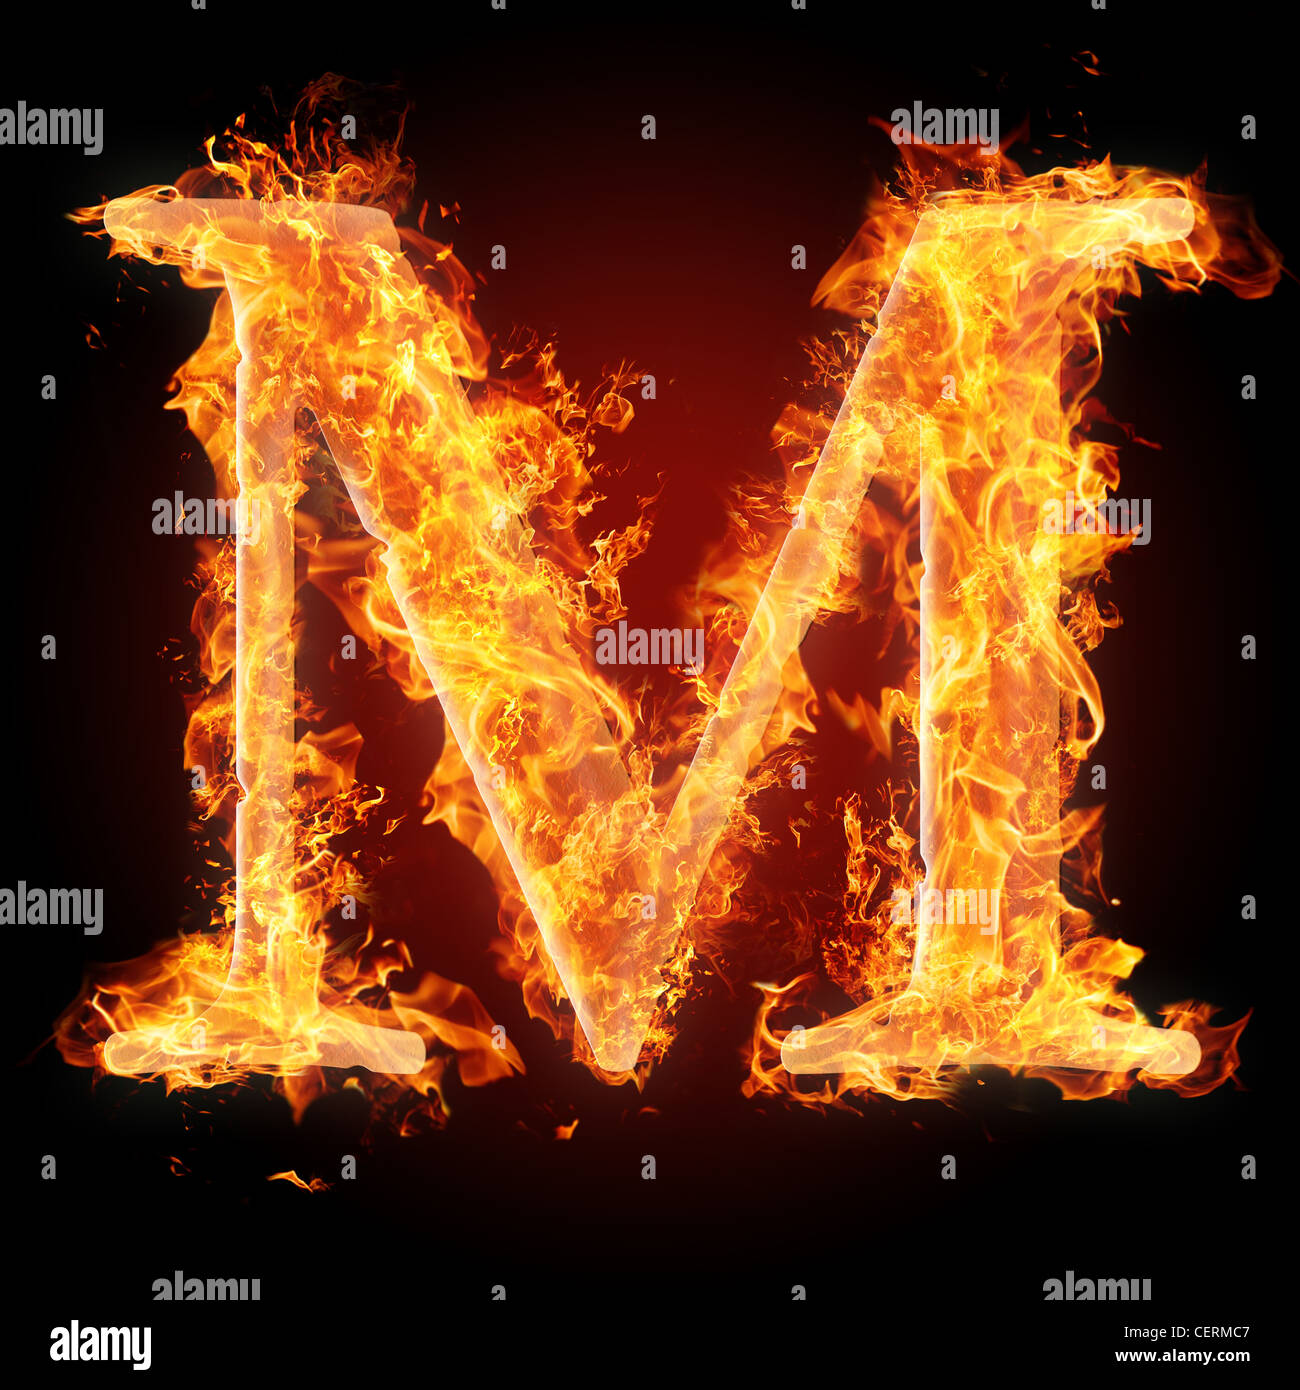 422dd63ed5e51 Letter M in fire. For more words, fonts and symbols see my portfolio.